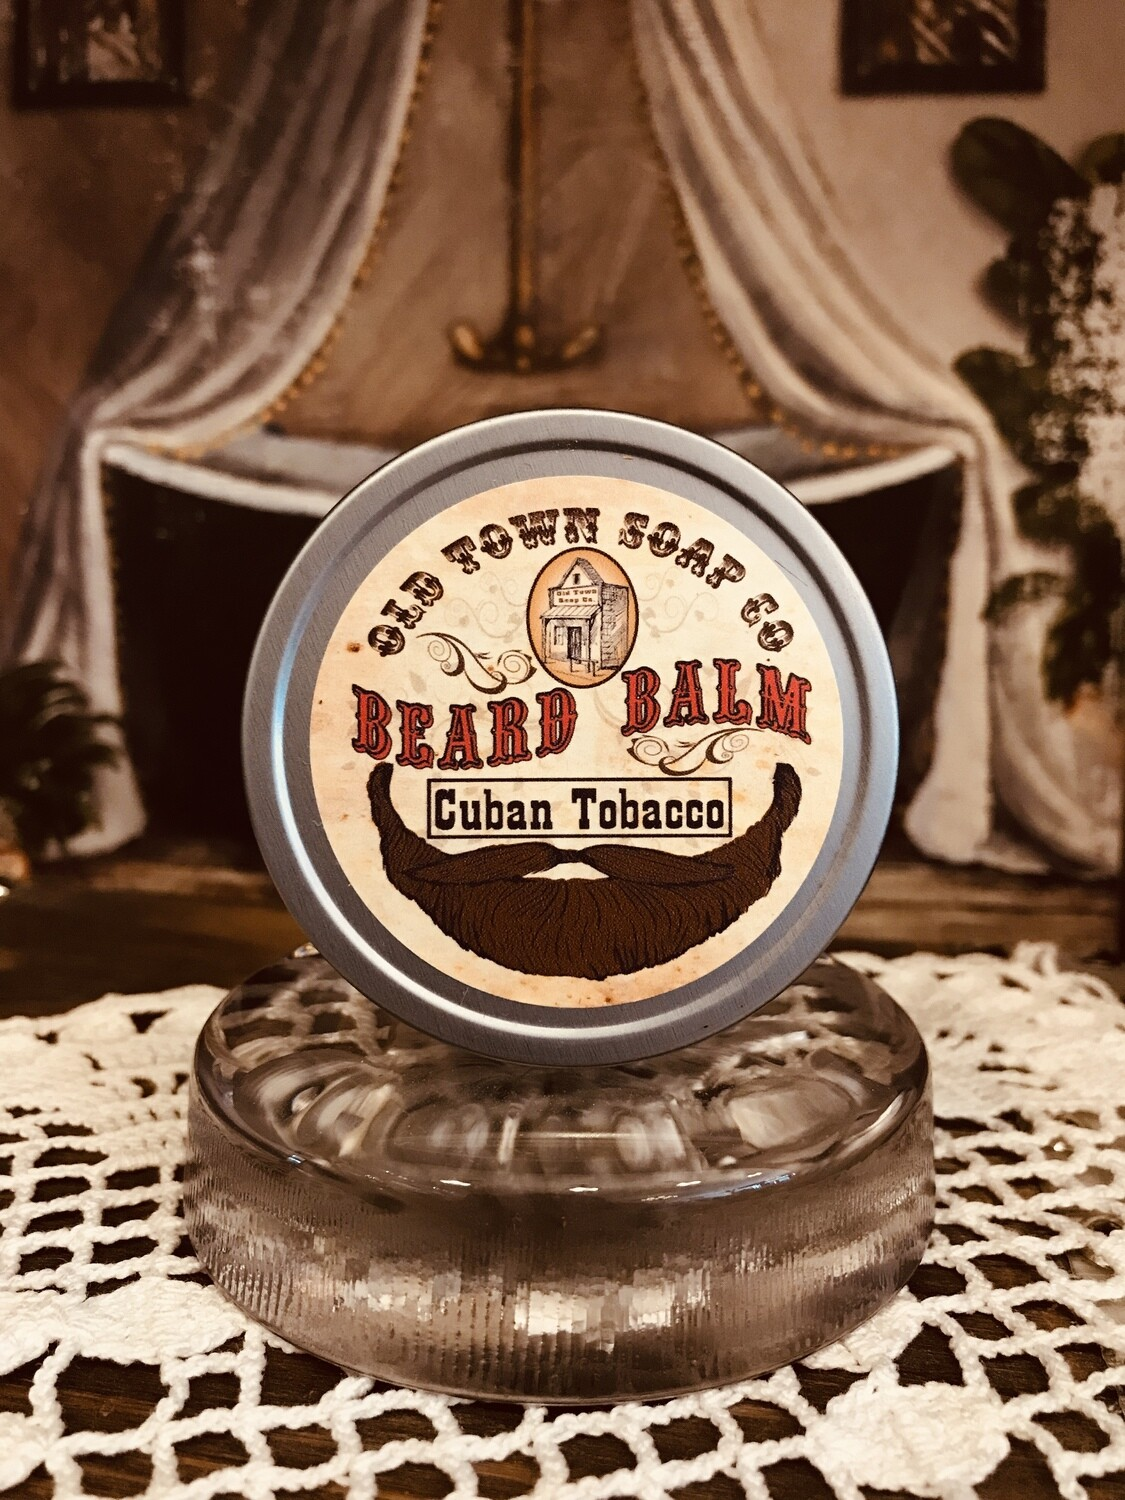 Cuban Tobacco -Beard Balm